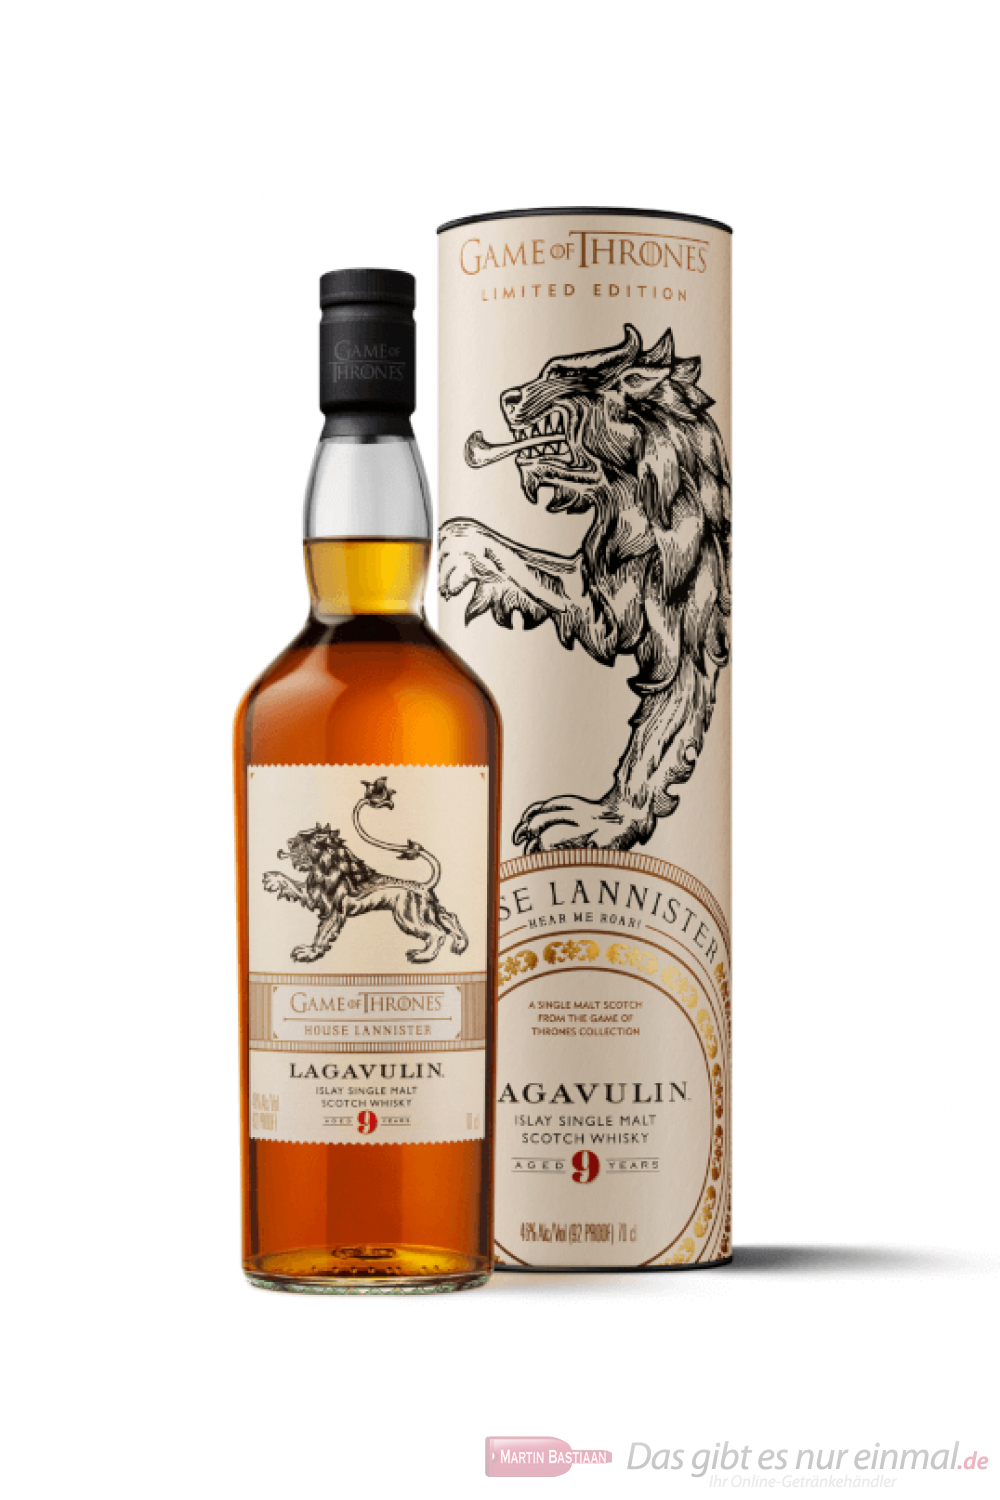 Game of Thrones House Lannister Lagavulin 9 Years Whisky 0,7l